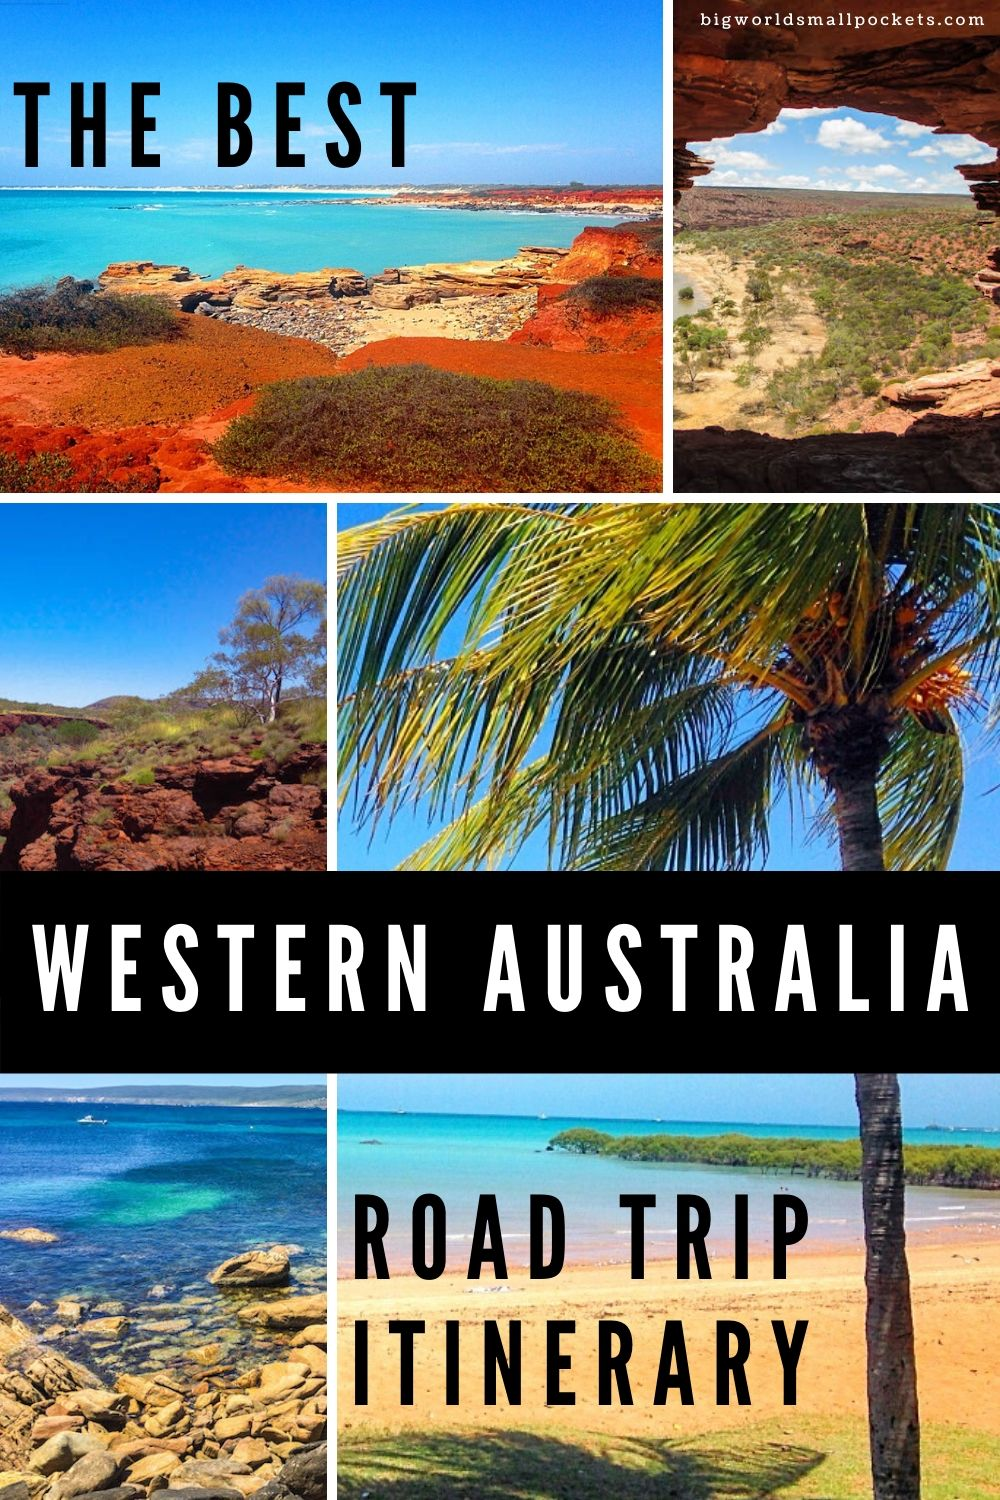 Ultimate West Coast Australia Road Trip Guide - Itinerary + Tips